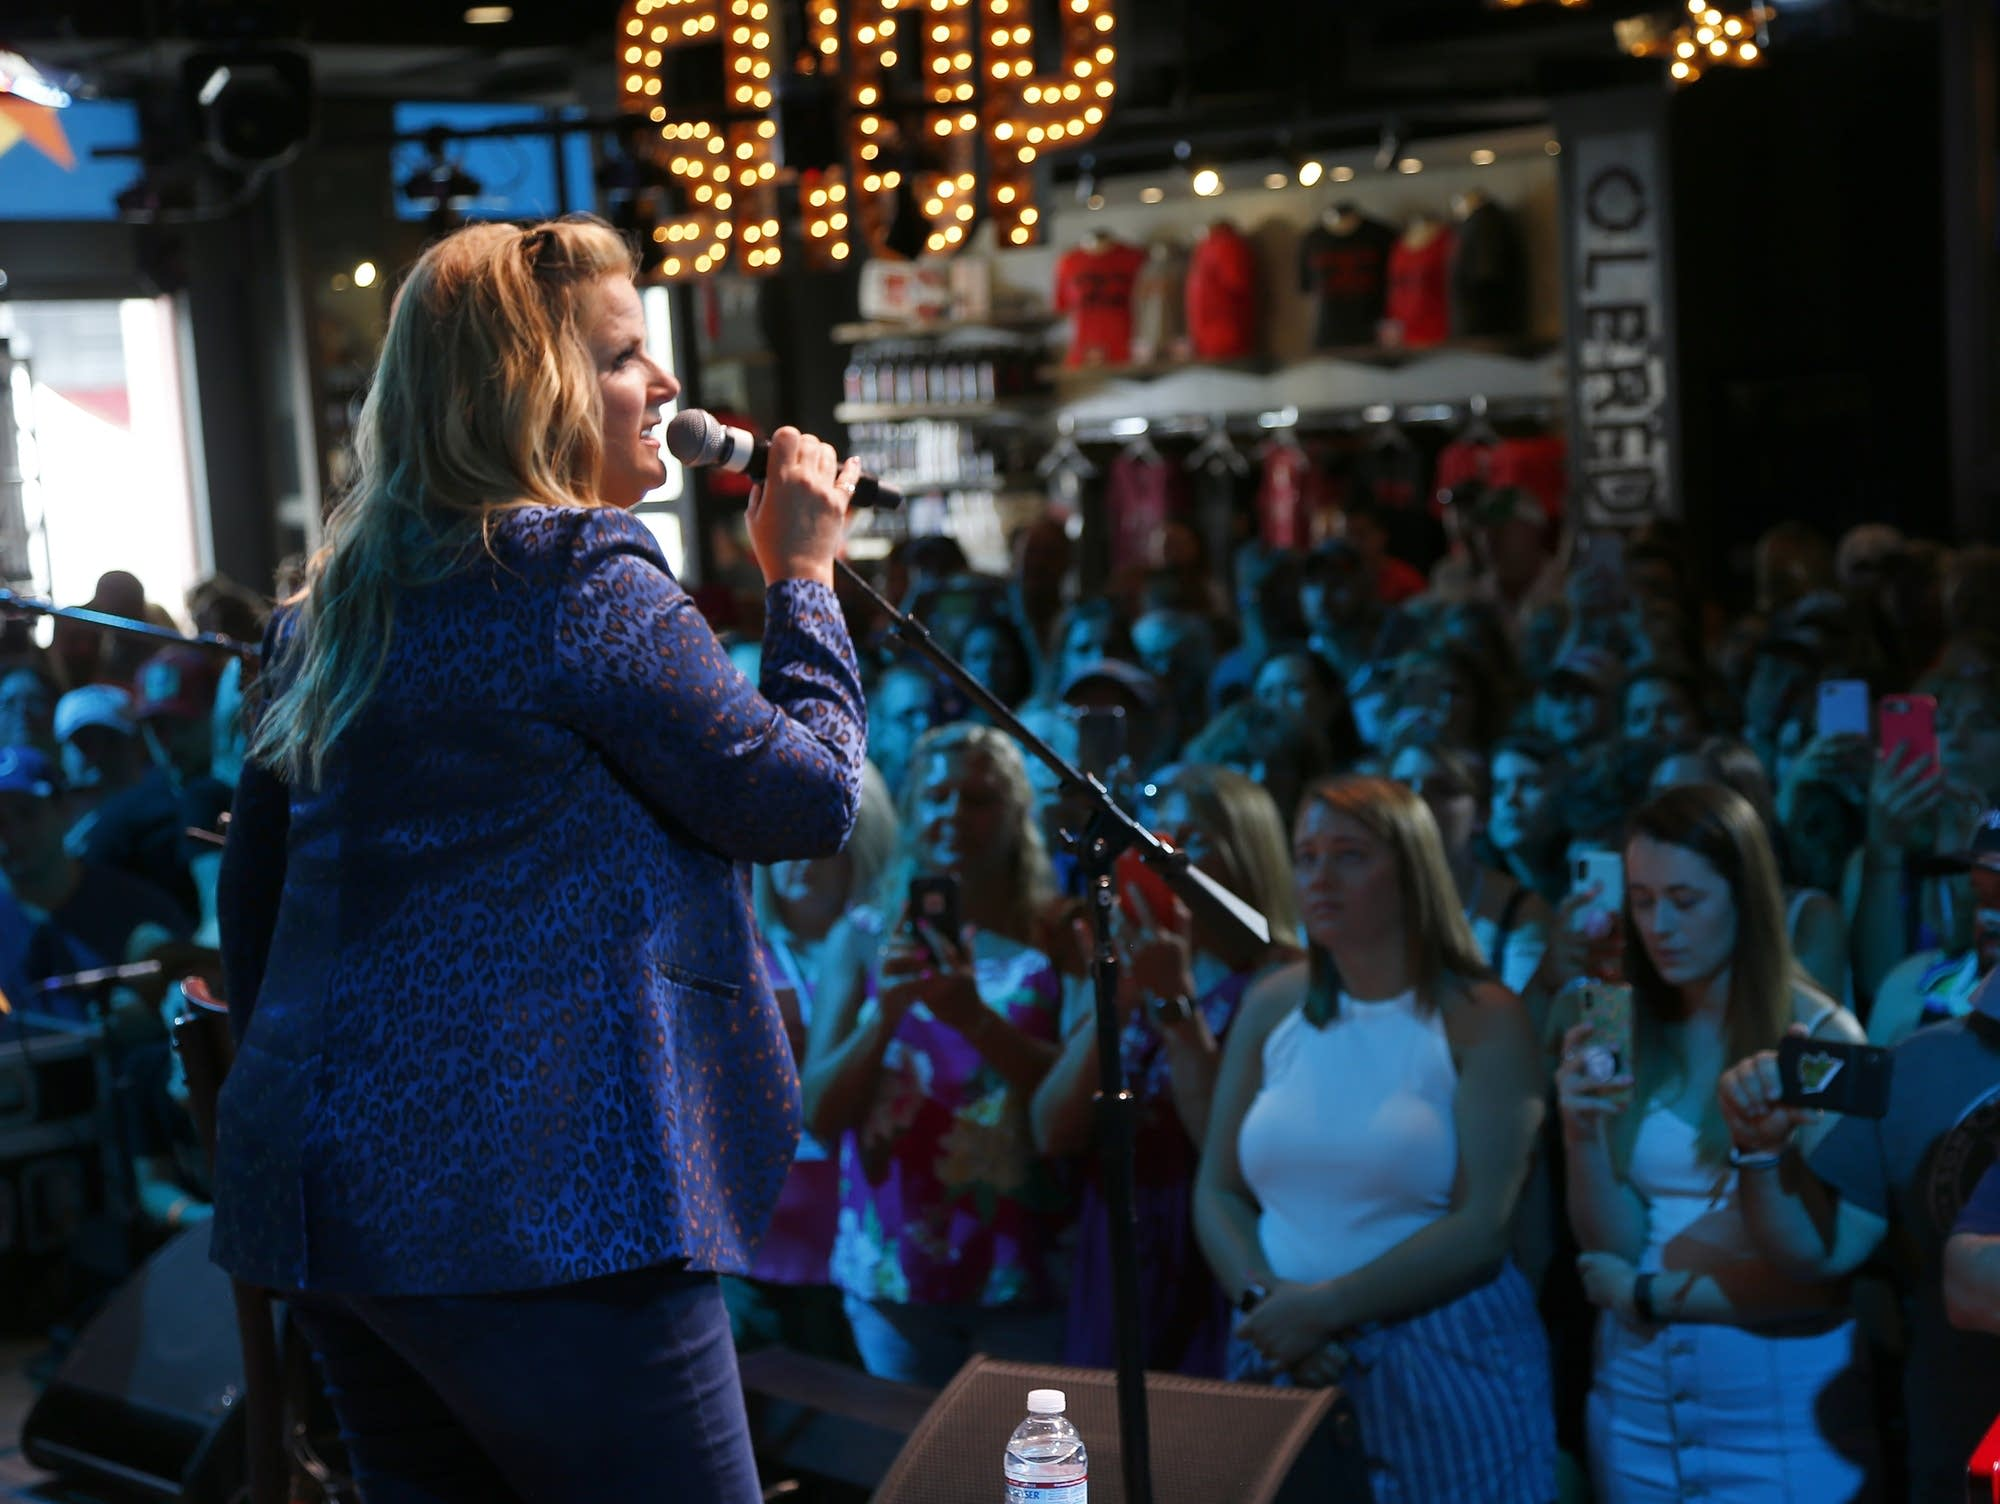 Trisha Yearwood performs on stage at Spotify House